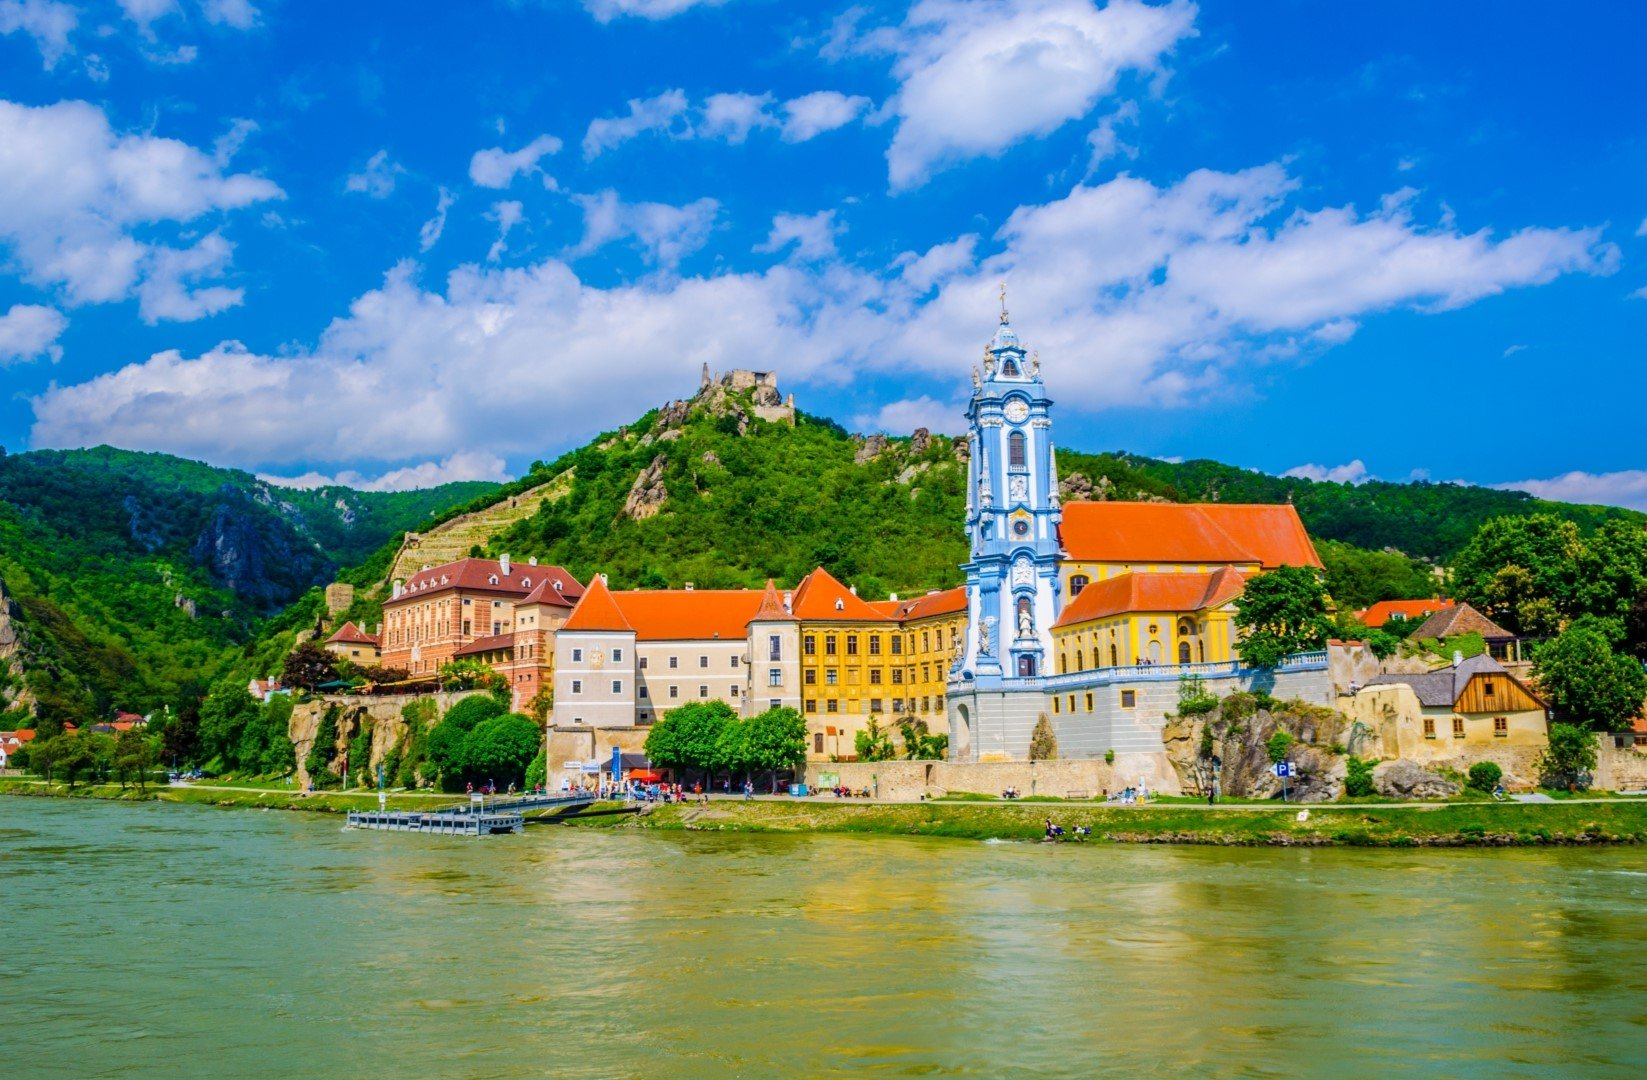 Leave behind the city noises and experience a completely different world: the Wachau Valley.